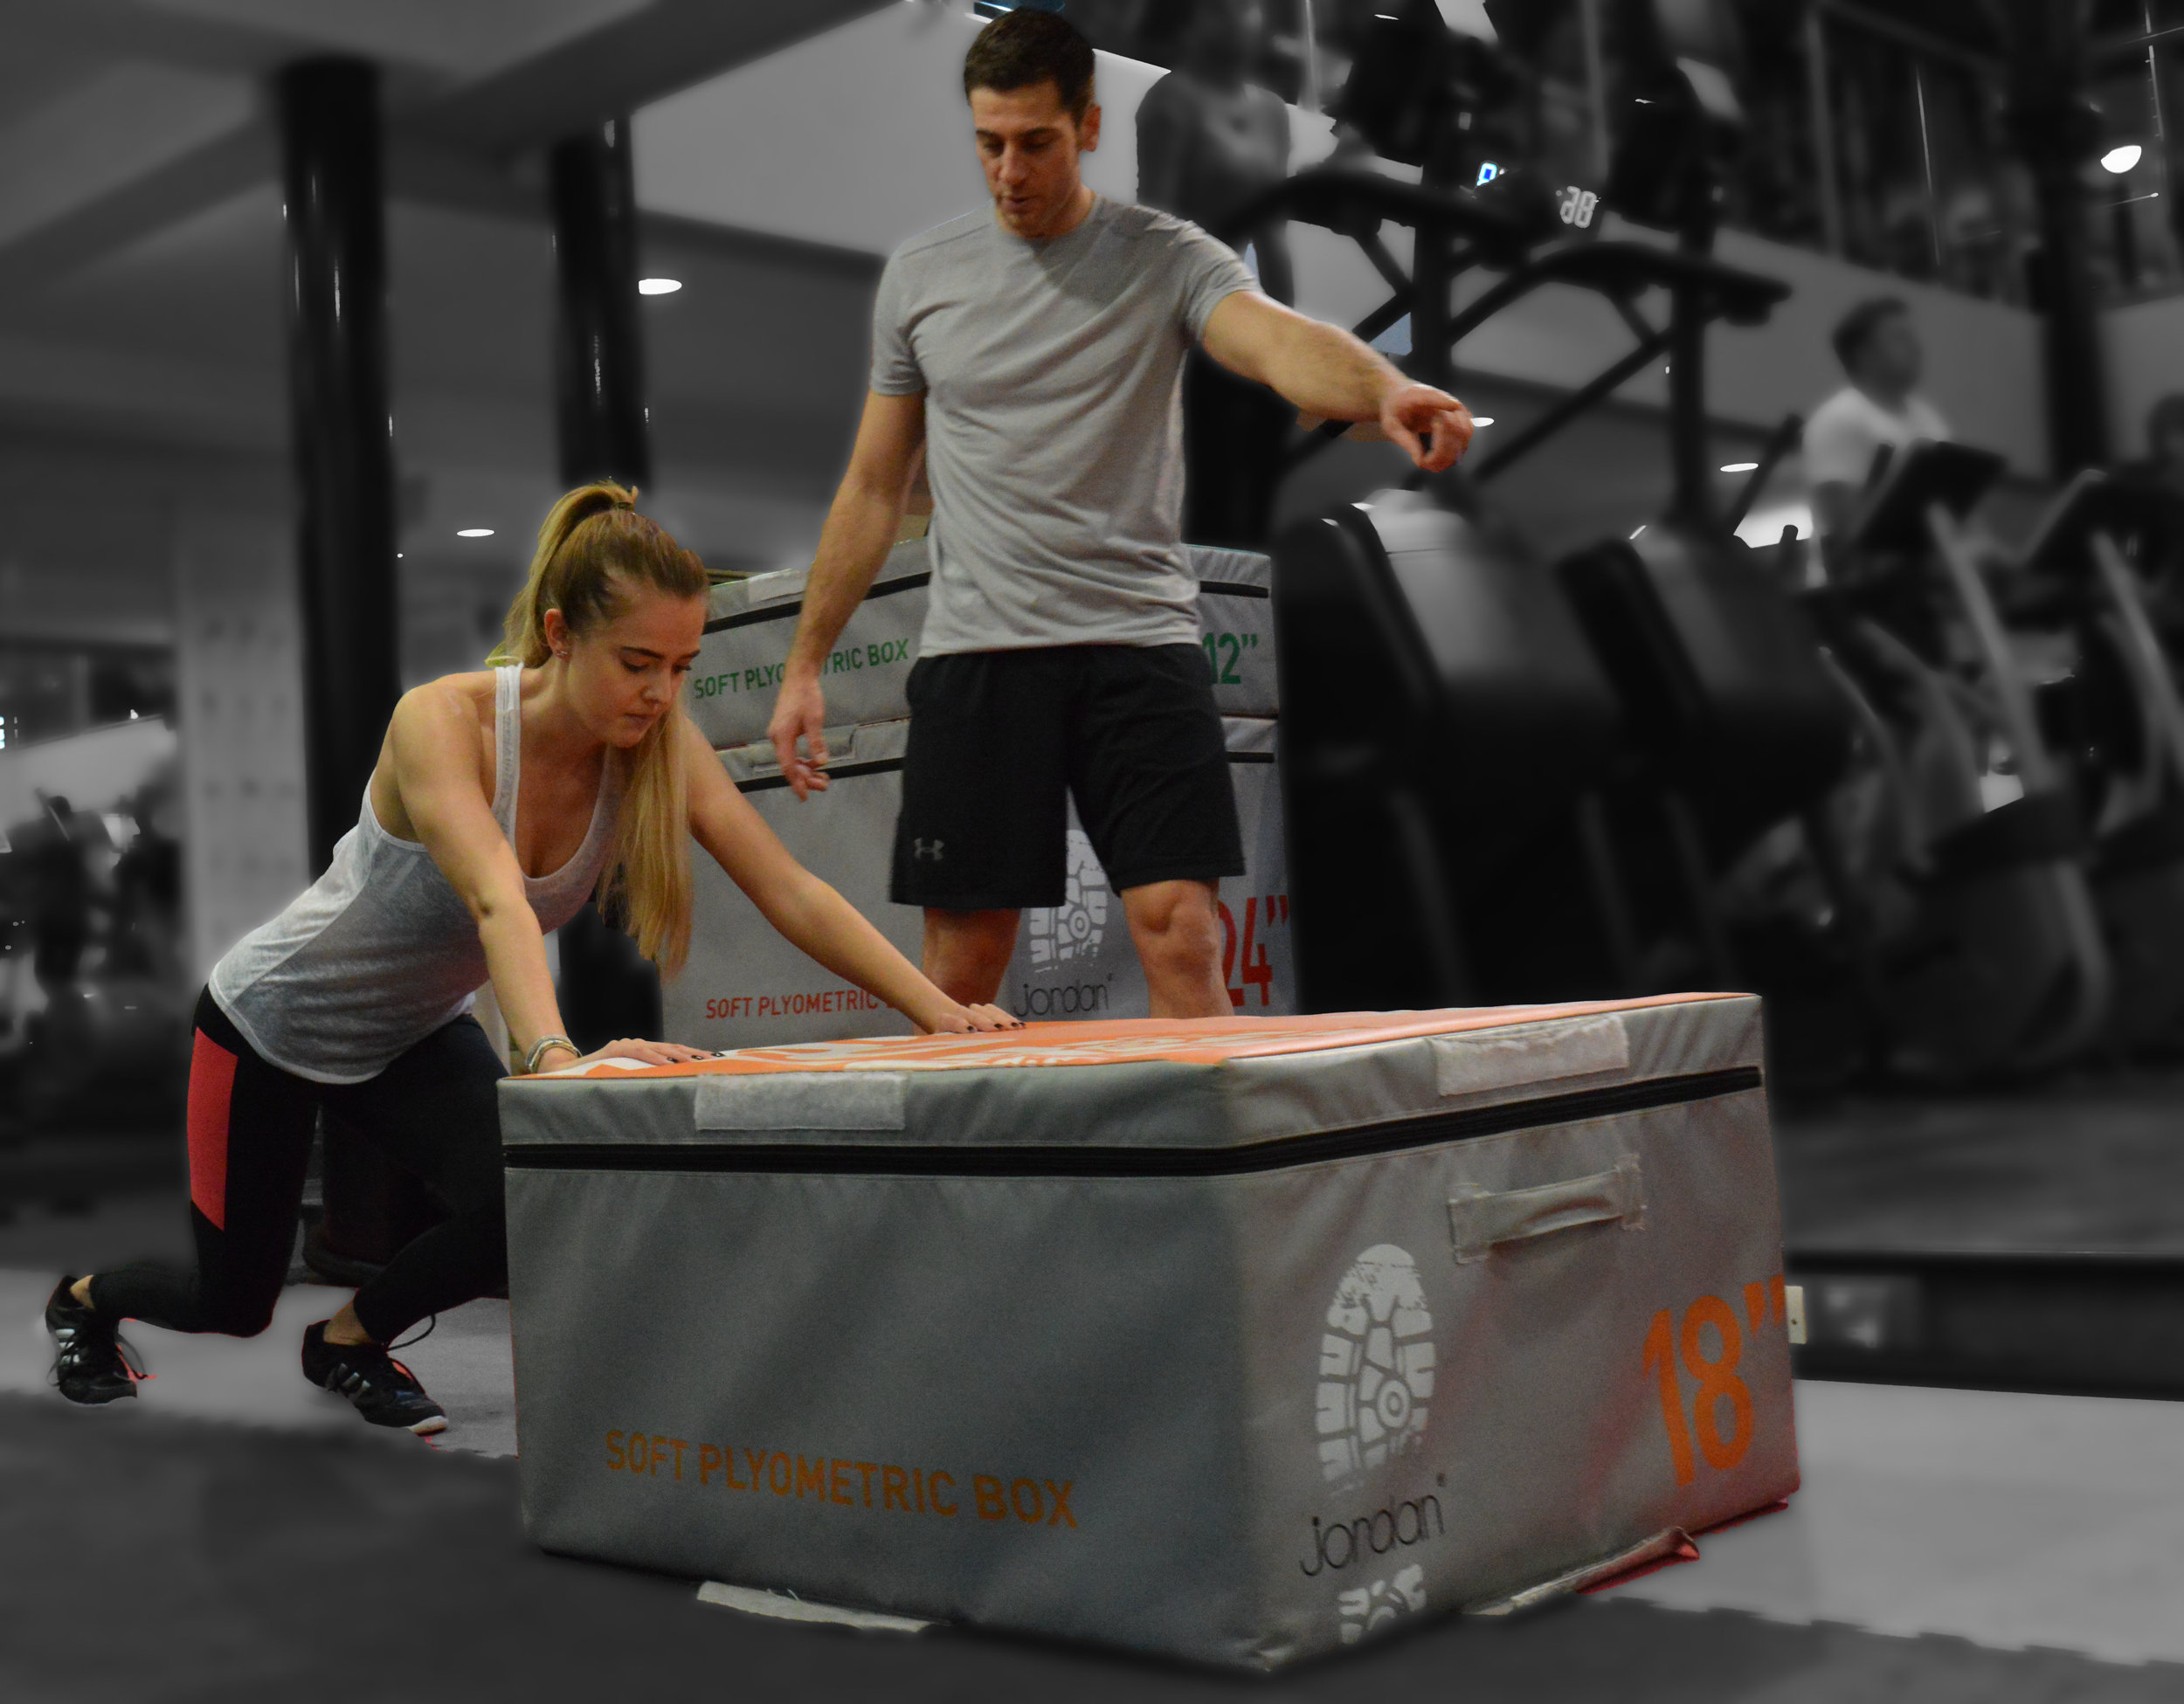 3 X TRAINING SESSIONS PER WEEK - Exercise 3x a week for 45 minutes in small groups (3 people maximum).THAT'S 24 Fitness Training sessions over 8 weeks.sessions ARE tailored to your abilities to maximize thE BENEFIT & GUARANTEE SUCCESS!